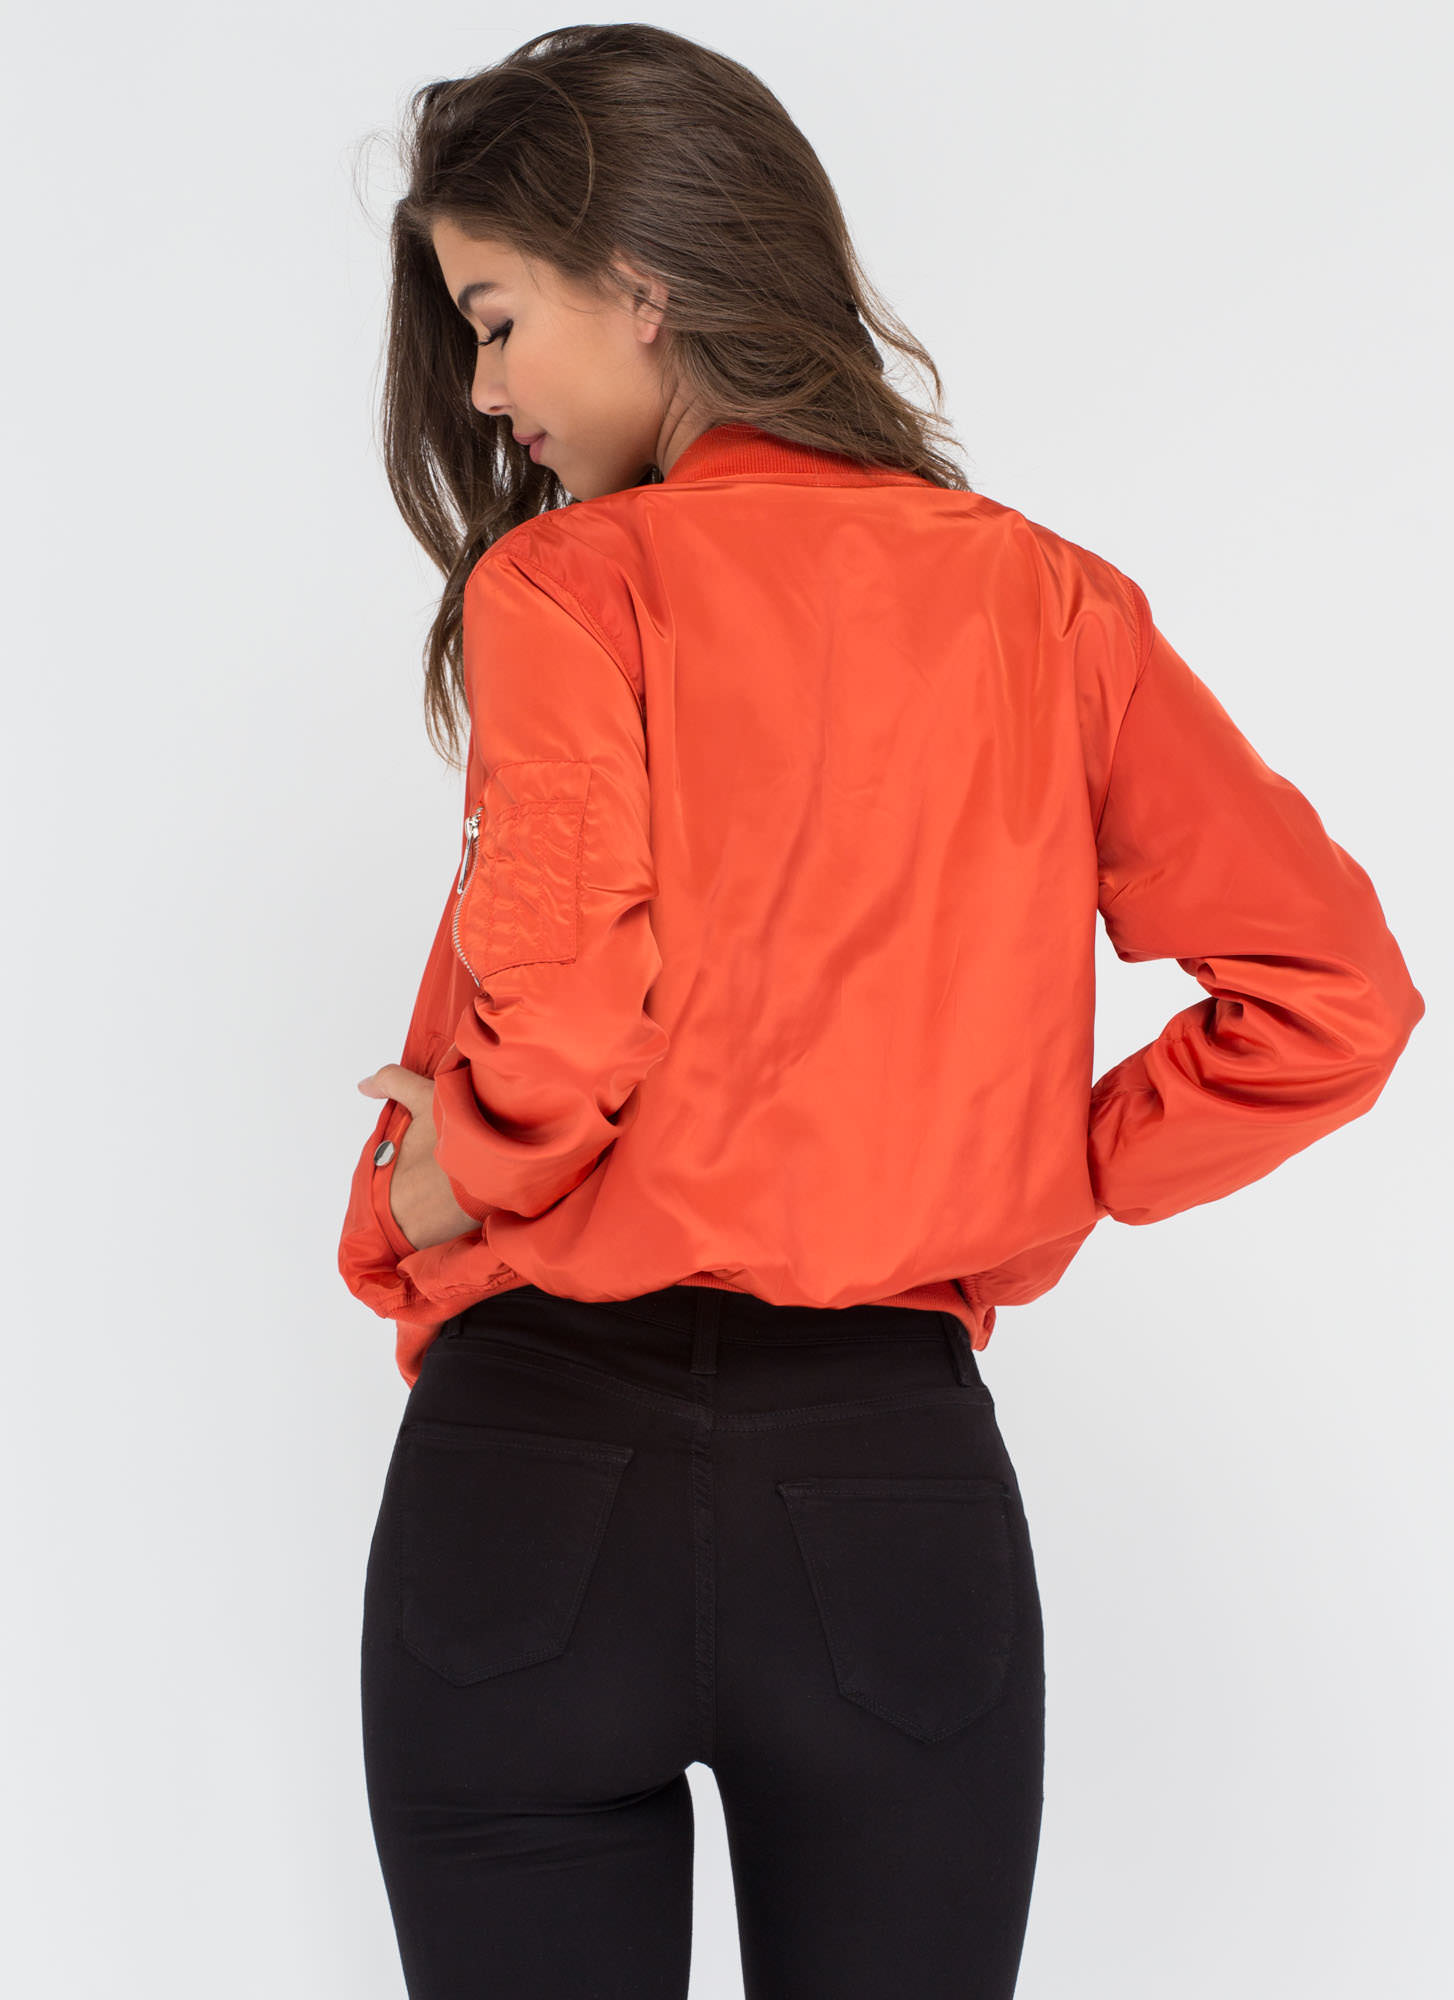 Top It Off Bomber Windbreaker Jacket ORANGE